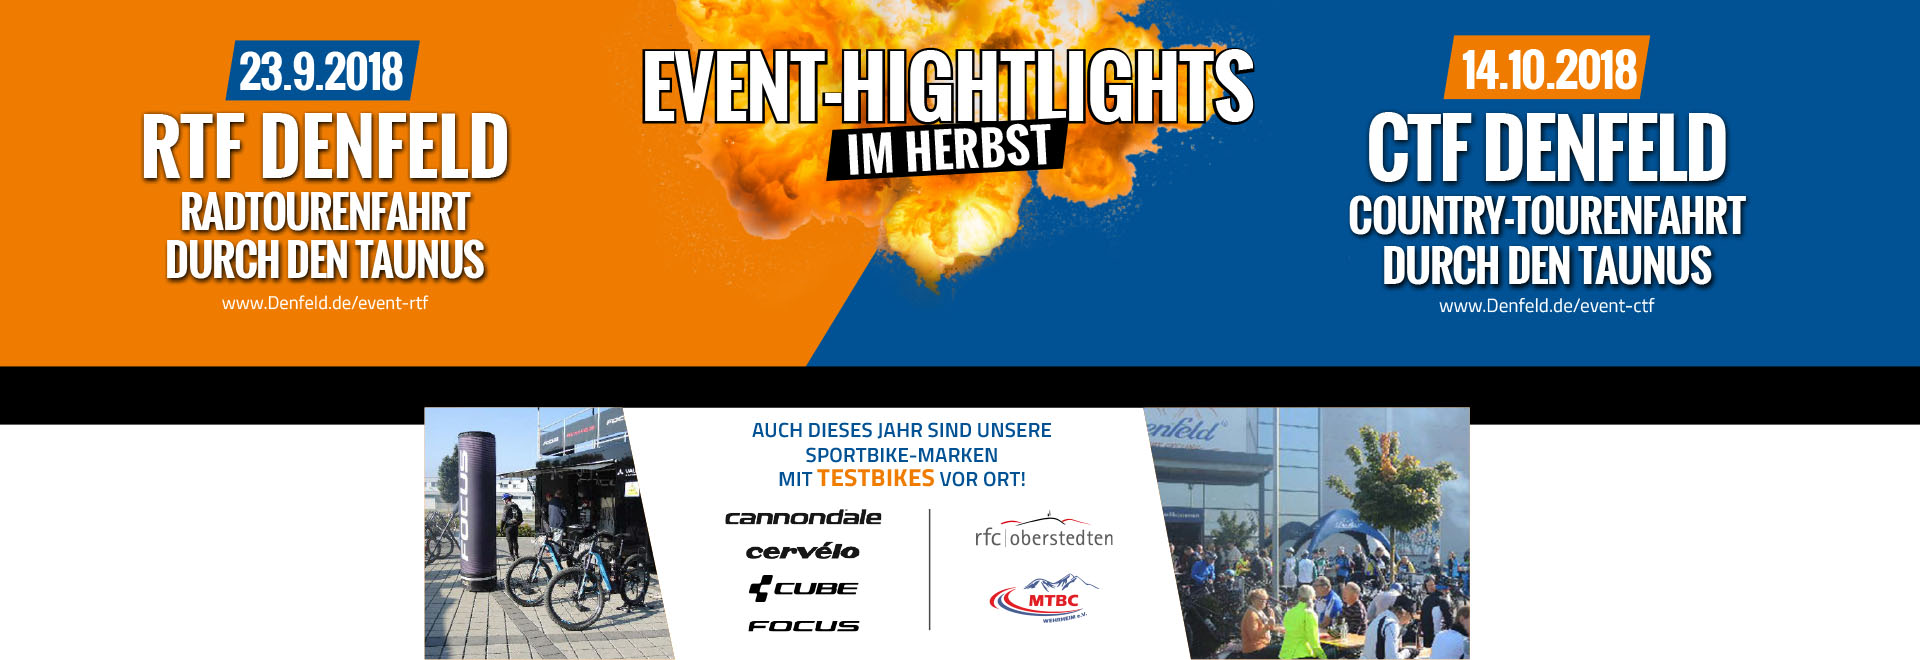 Event Highlights Herbst 2018